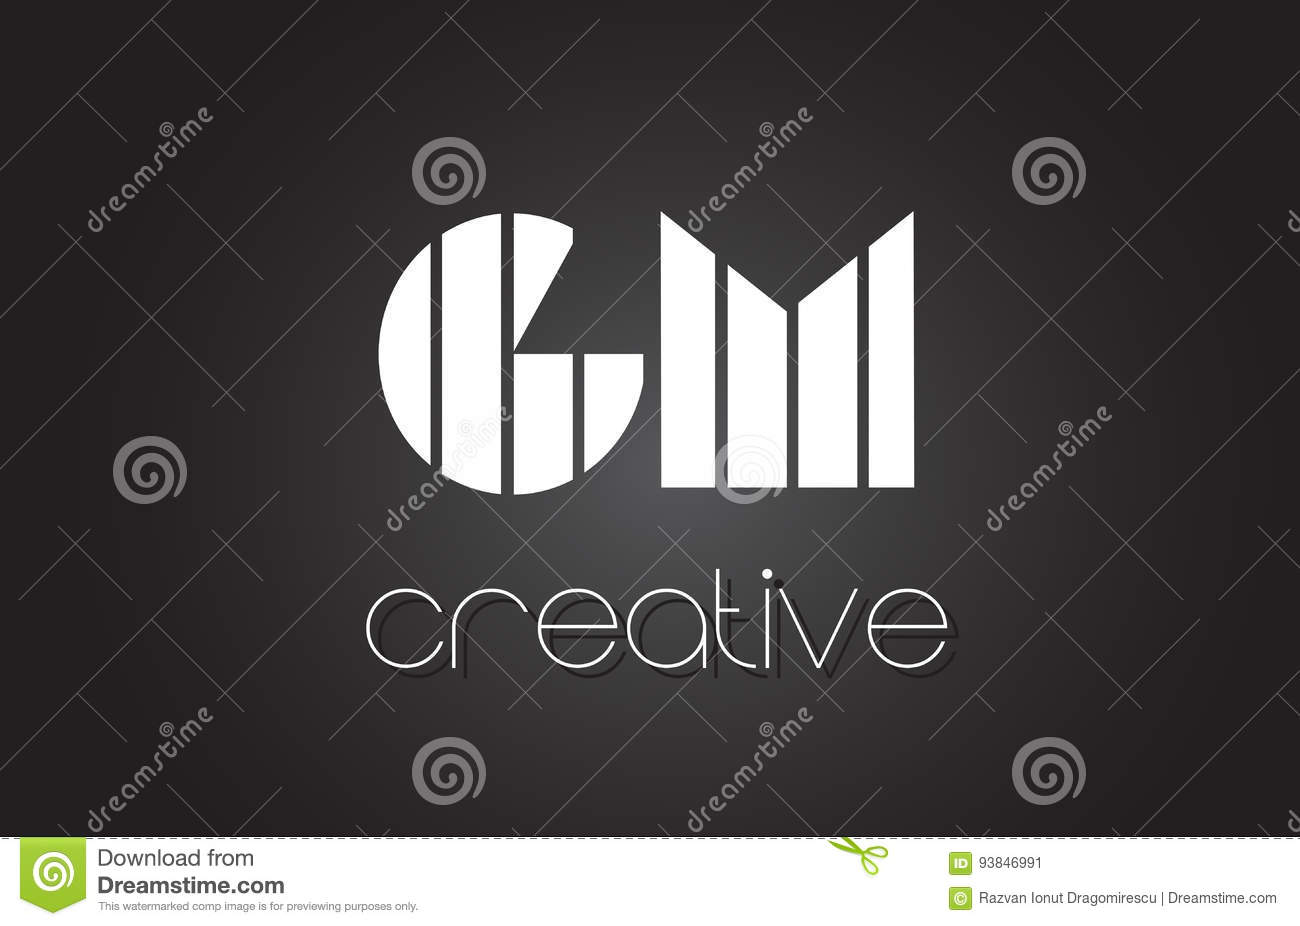 Gm G M Letter Logo Design With White And Black Lines Stock Vector